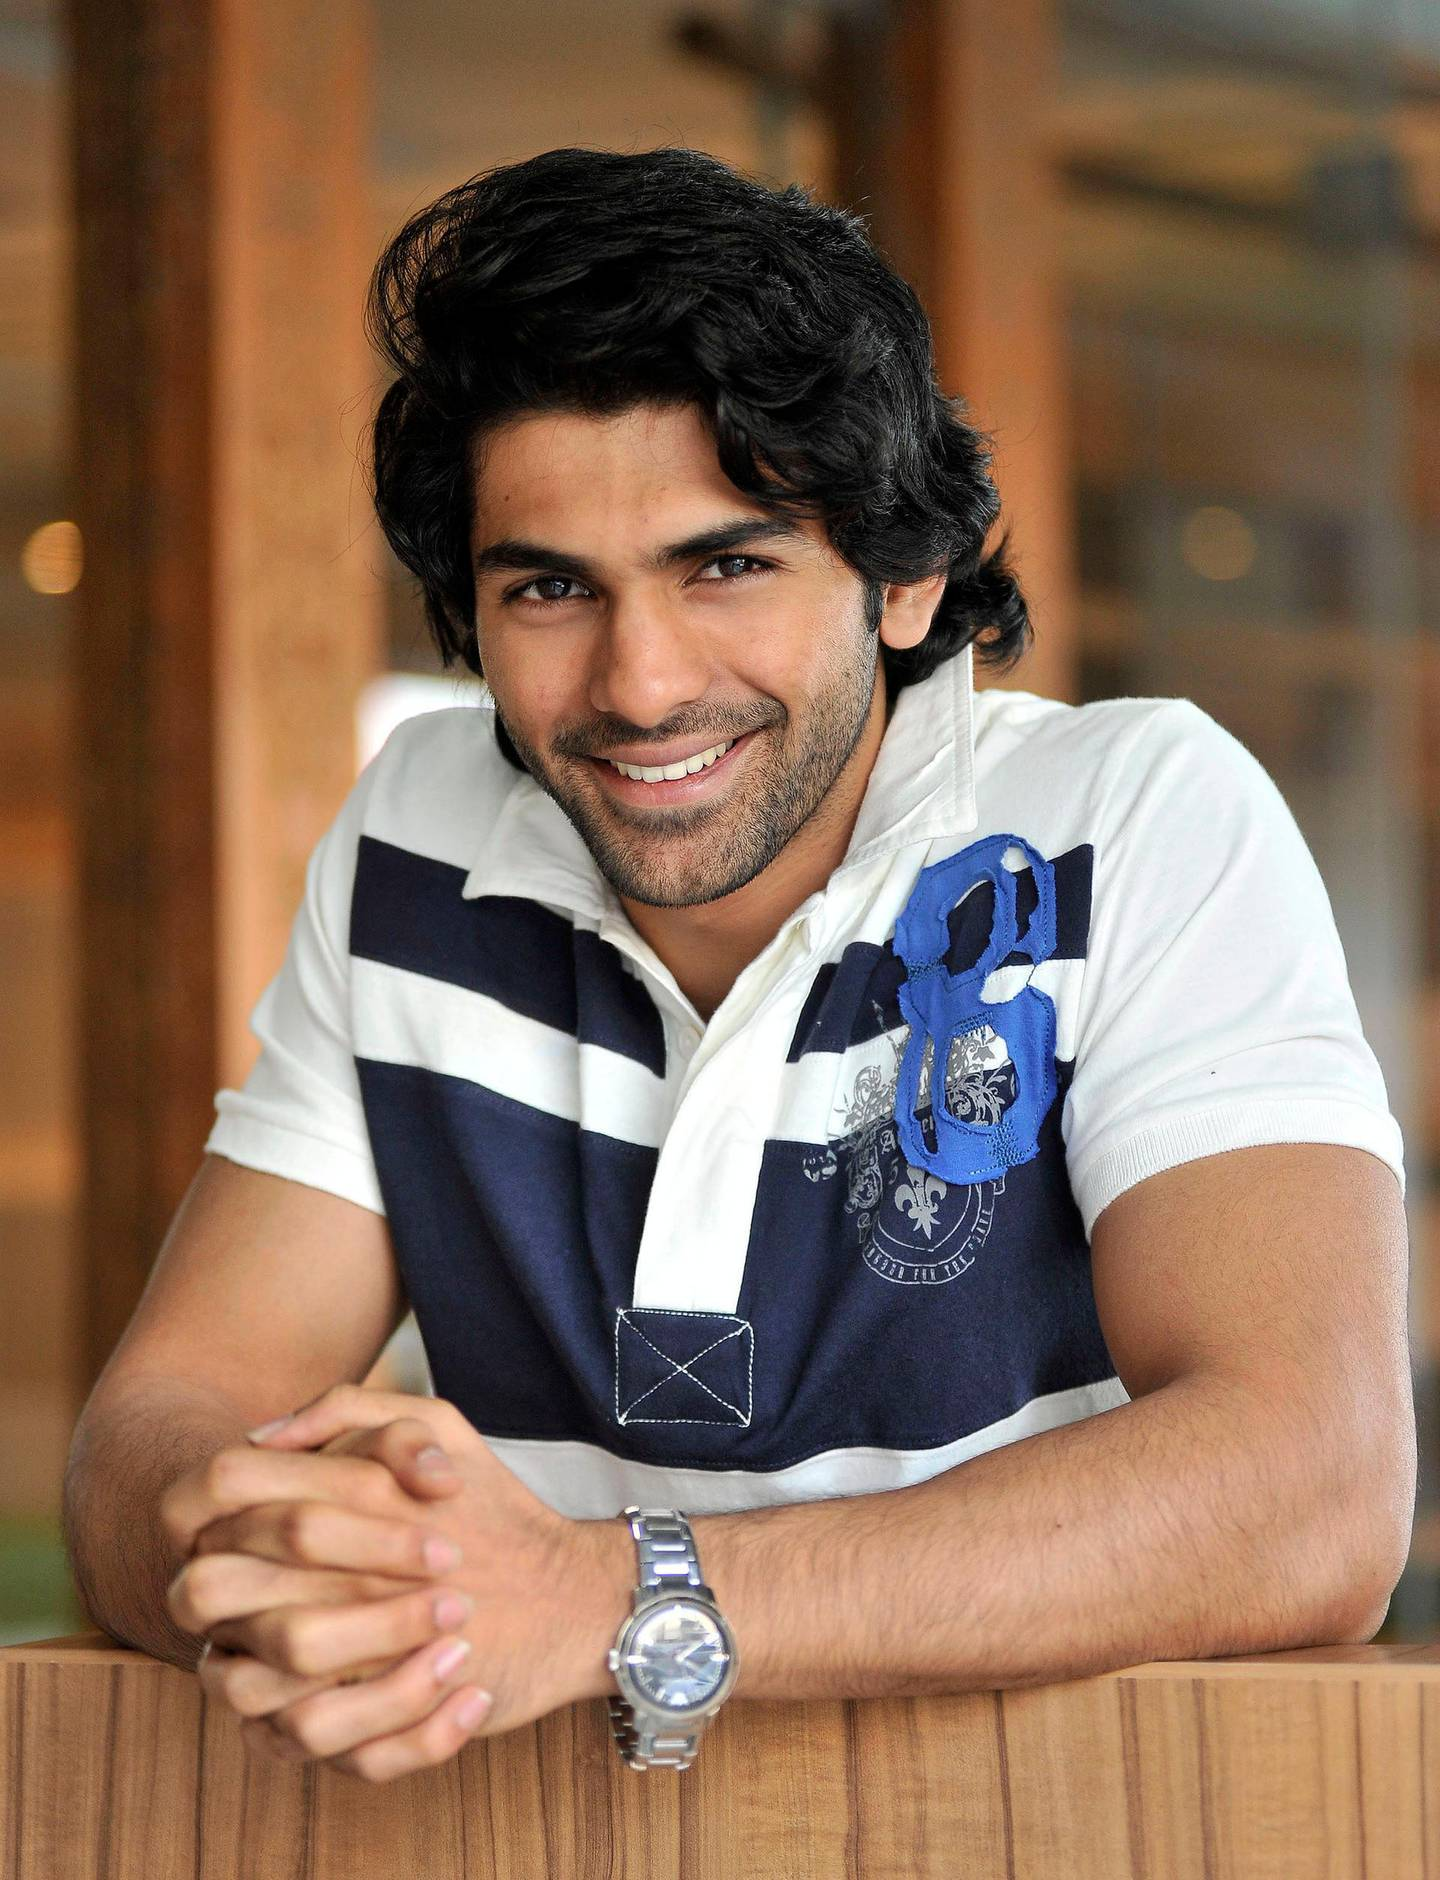 Taaha Shah, an up and coming Bollywood actor born and grew up in the UAE, at his uncle's restaurant, Moti Mahal, on Thrsday, April 25, 2013 in Dubai, United Arab Emirates. Photo: Charles Crowell for The National